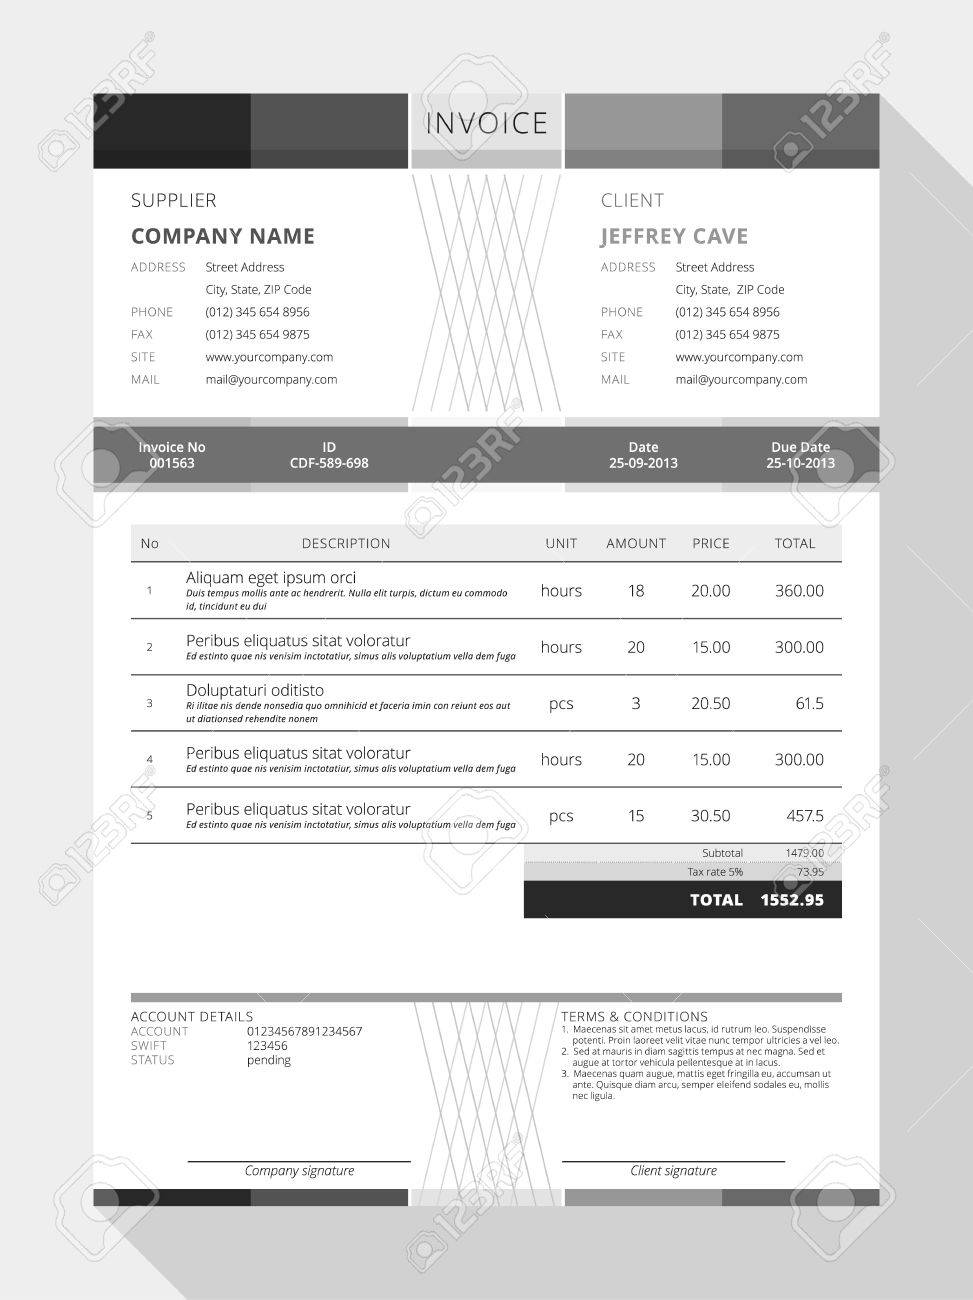 Howcanigettallerus  Ravishing Design An Invoice  Professional Graphic Design Invoice  With Exciting Vector Customizable Invoice Form Template Design Vector   Design An Invoice With Attractive Invoice Template To Download Also Microsoft Word  Invoice Template In Addition Vehicle Invoice Template And Invoice S As Well As Free Invoice Software Australia Additionally  Ford Escape Invoice Price From Happytomco With Howcanigettallerus  Exciting Design An Invoice  Professional Graphic Design Invoice  With Attractive Vector Customizable Invoice Form Template Design Vector   Design An Invoice And Ravishing Invoice Template To Download Also Microsoft Word  Invoice Template In Addition Vehicle Invoice Template From Happytomco